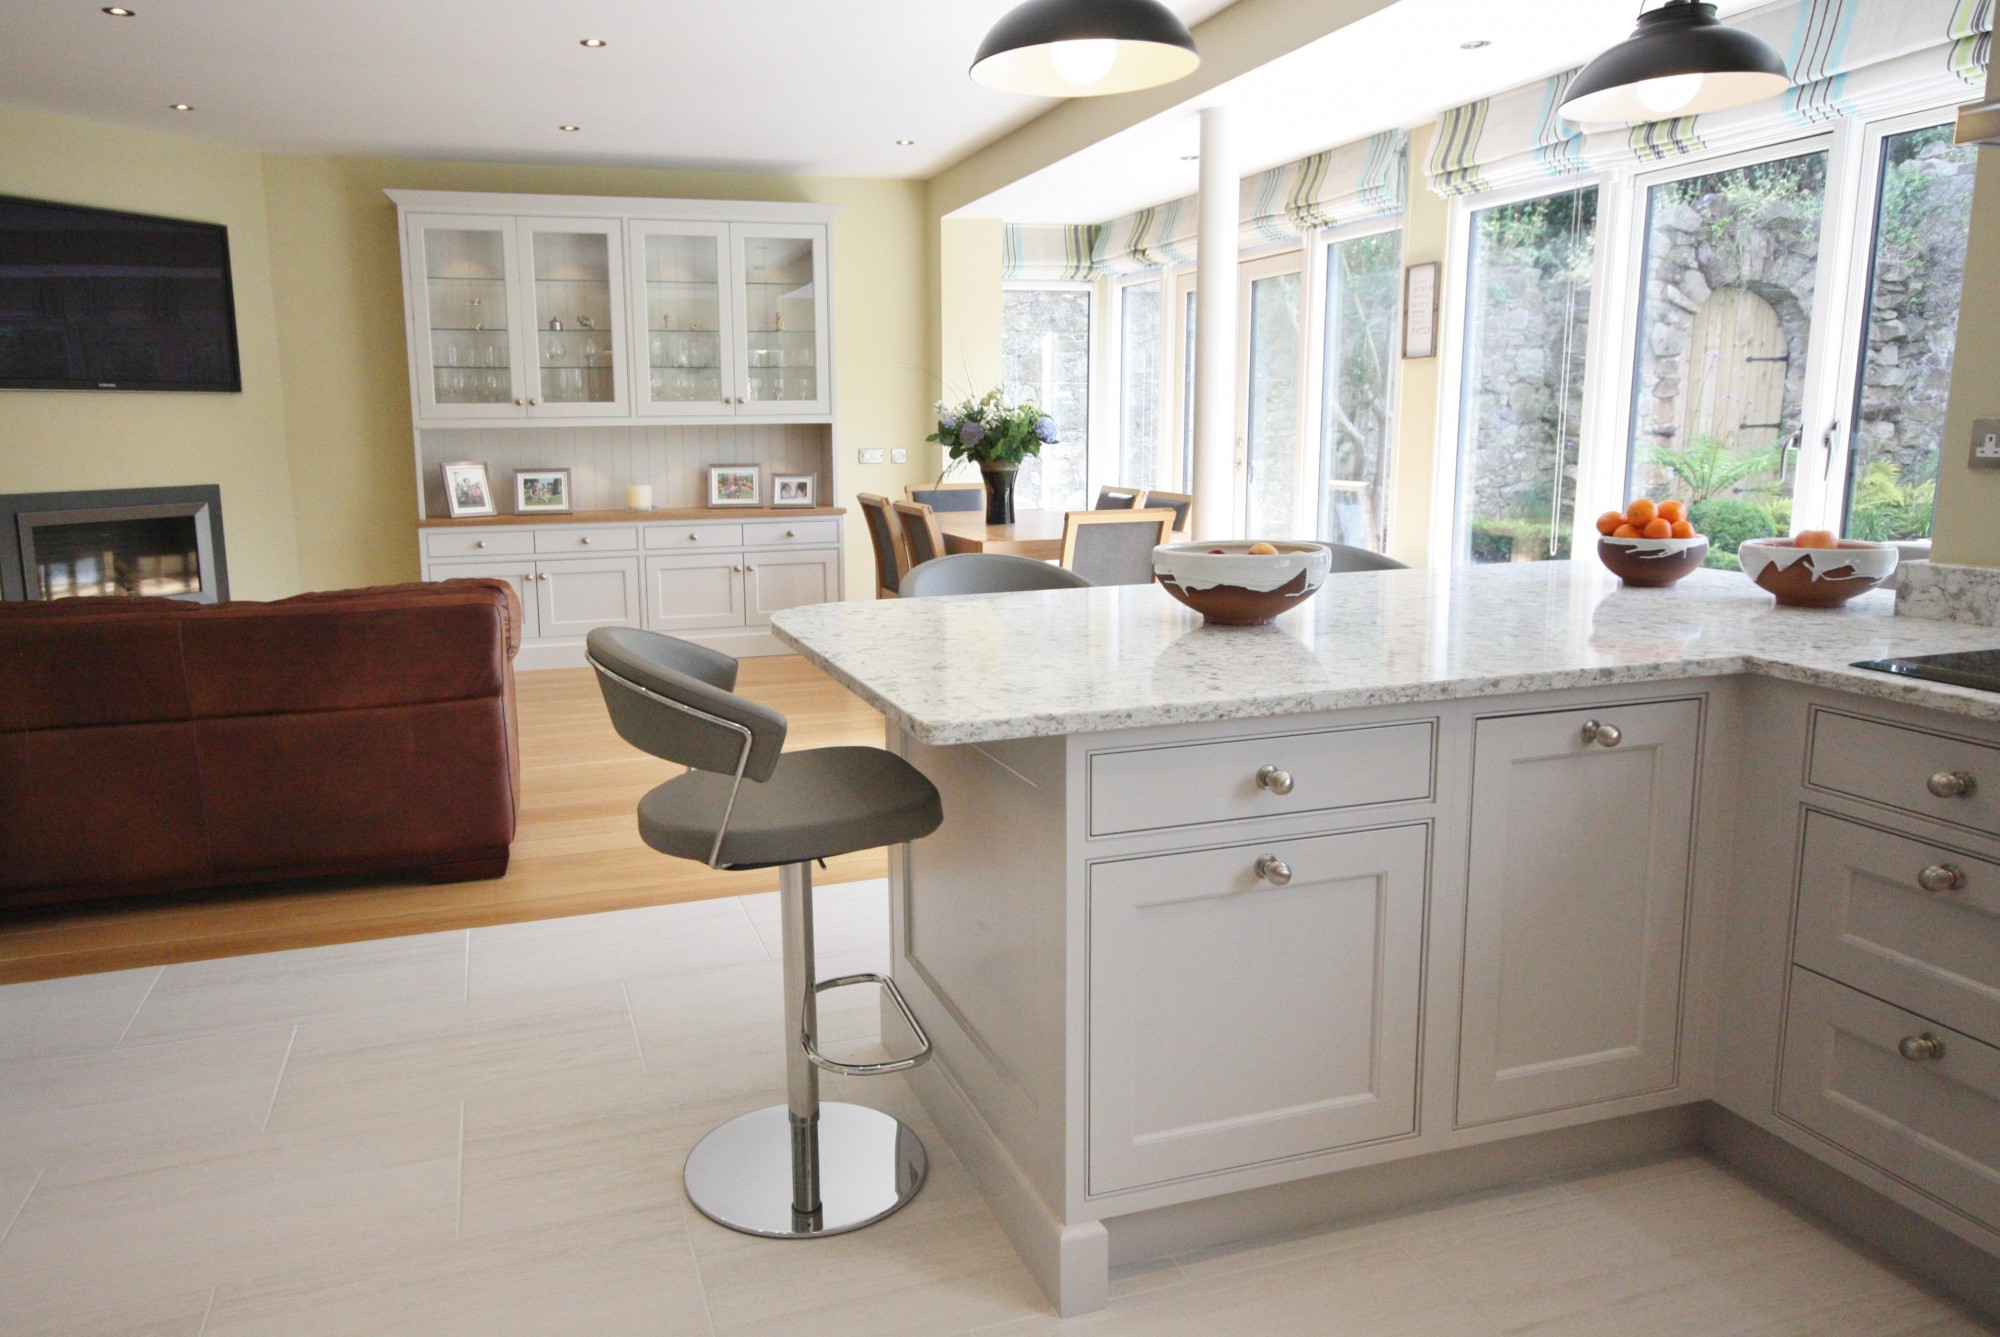 Handmade Kitchen Cabinets Ireland Home Decor Inspiration When We Are Talking About Kitchen We